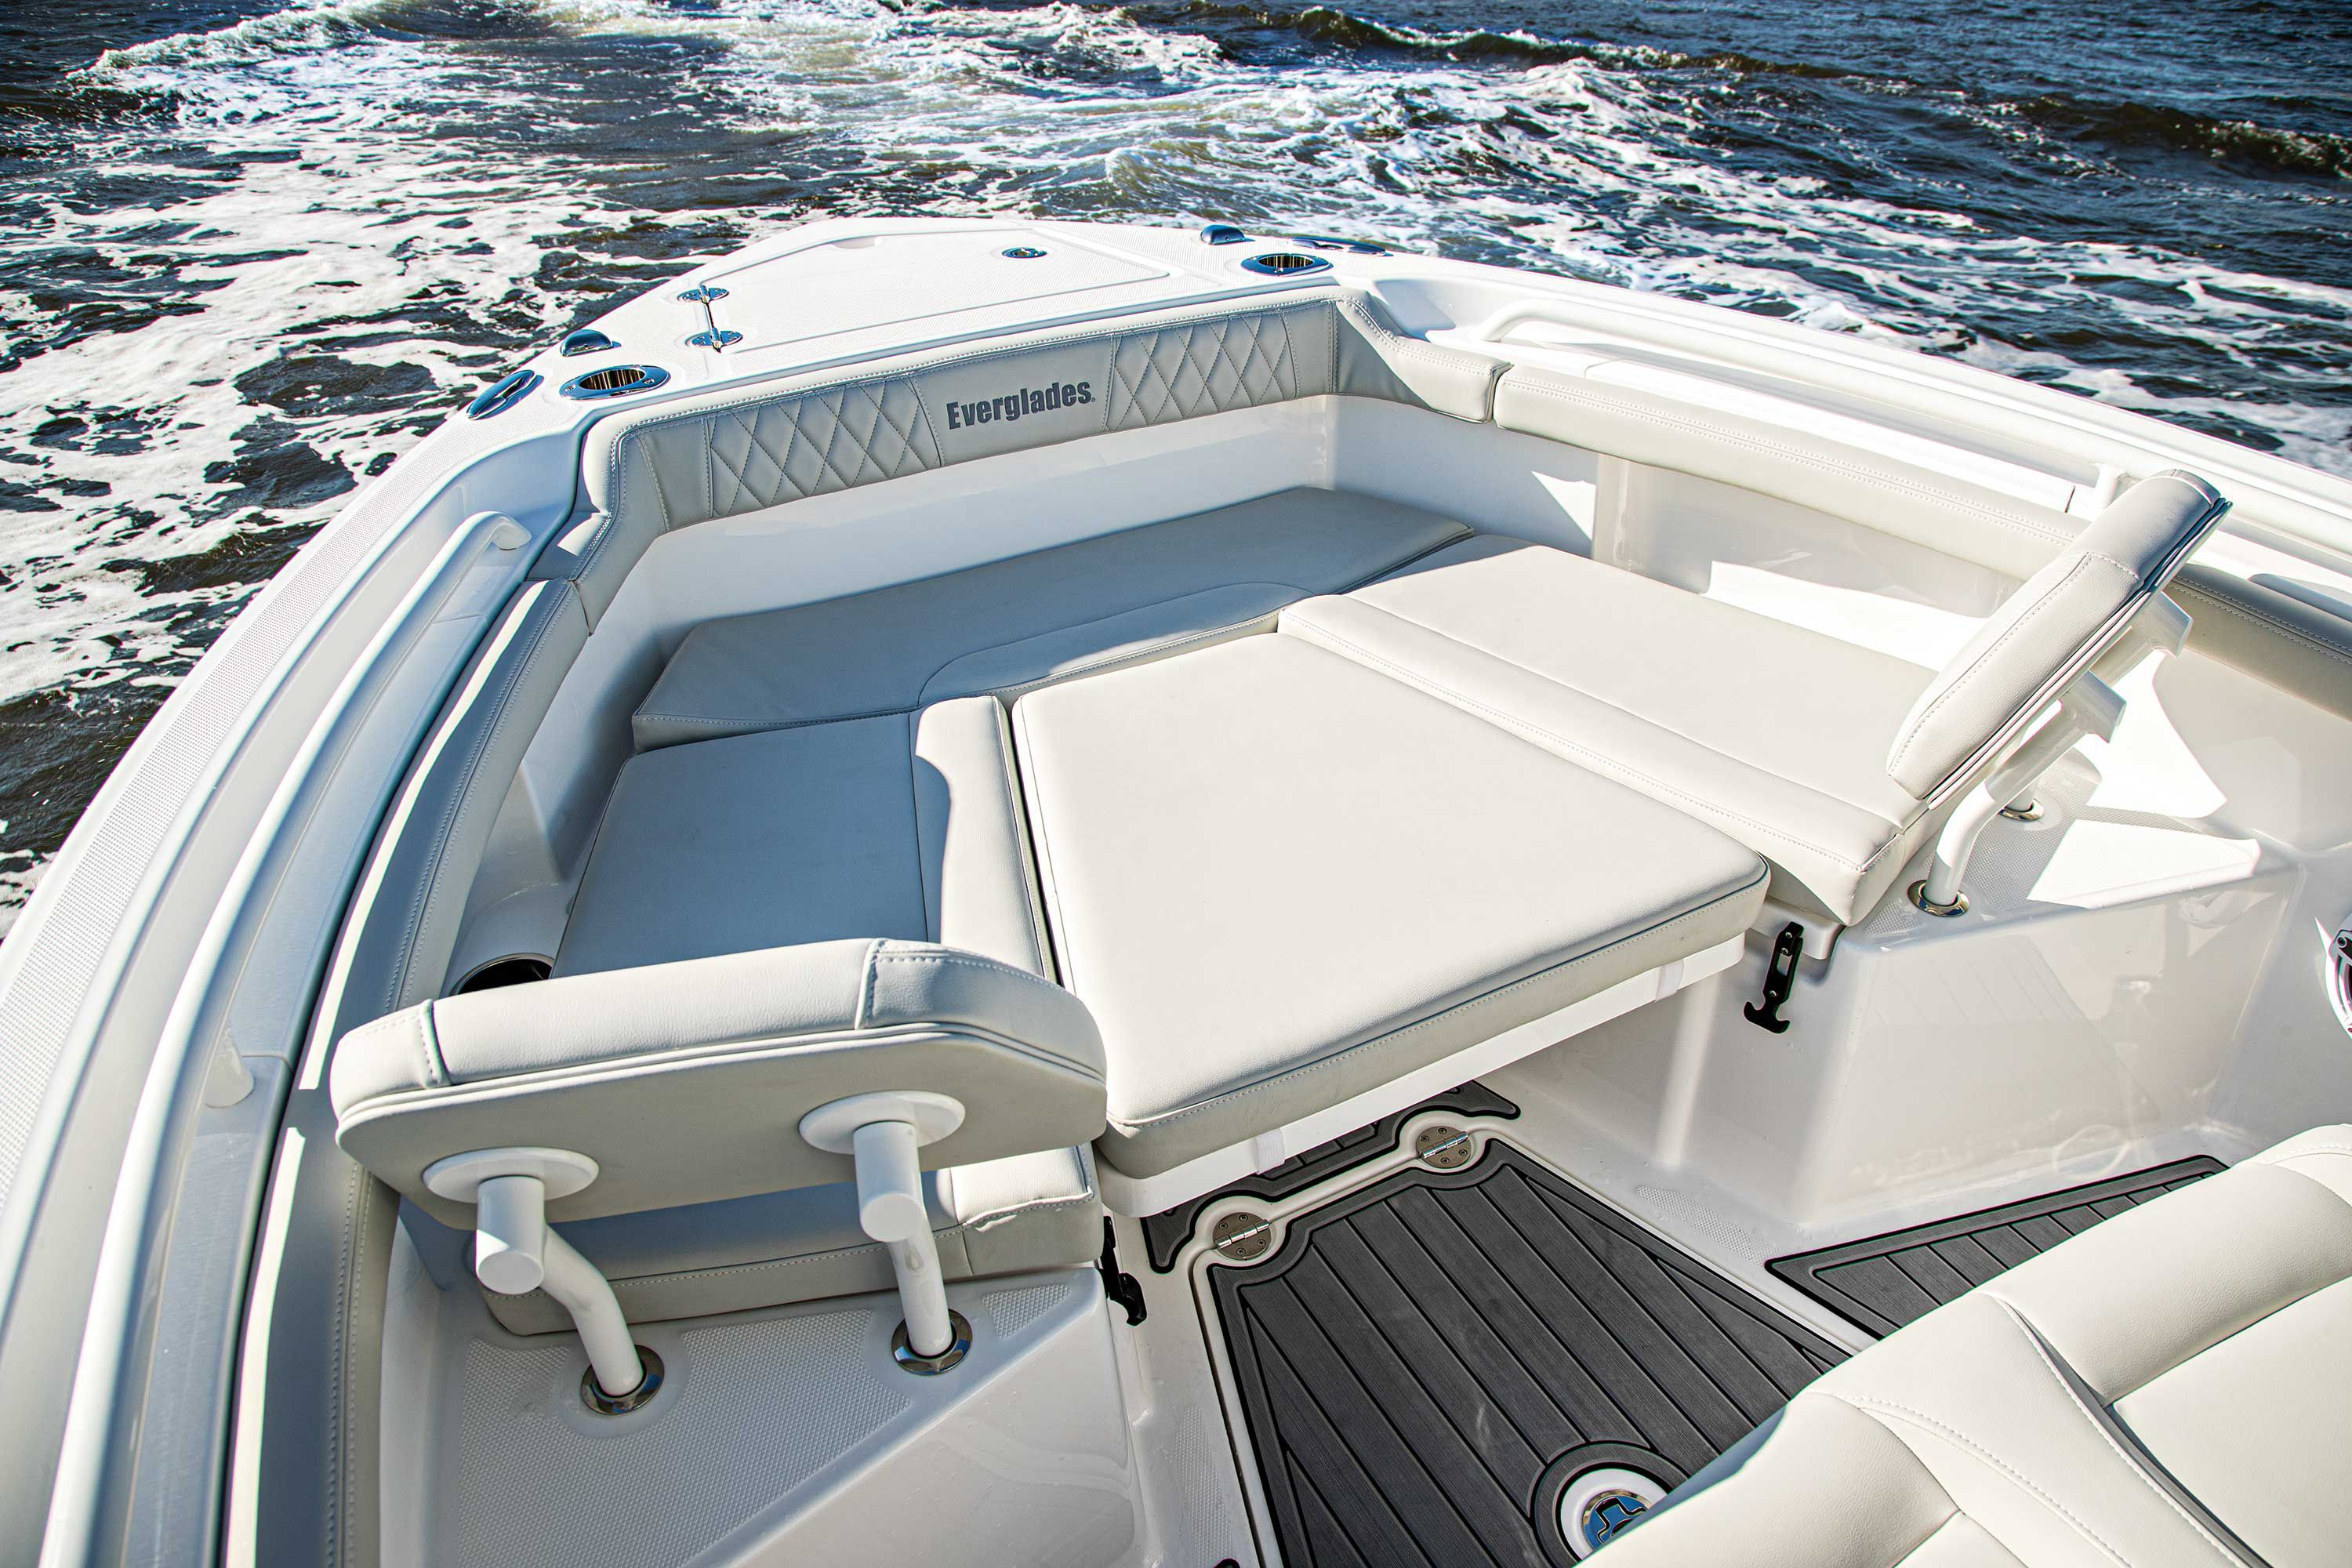 Bow seating turns into a sun pad, and removable backrests allow lounging.